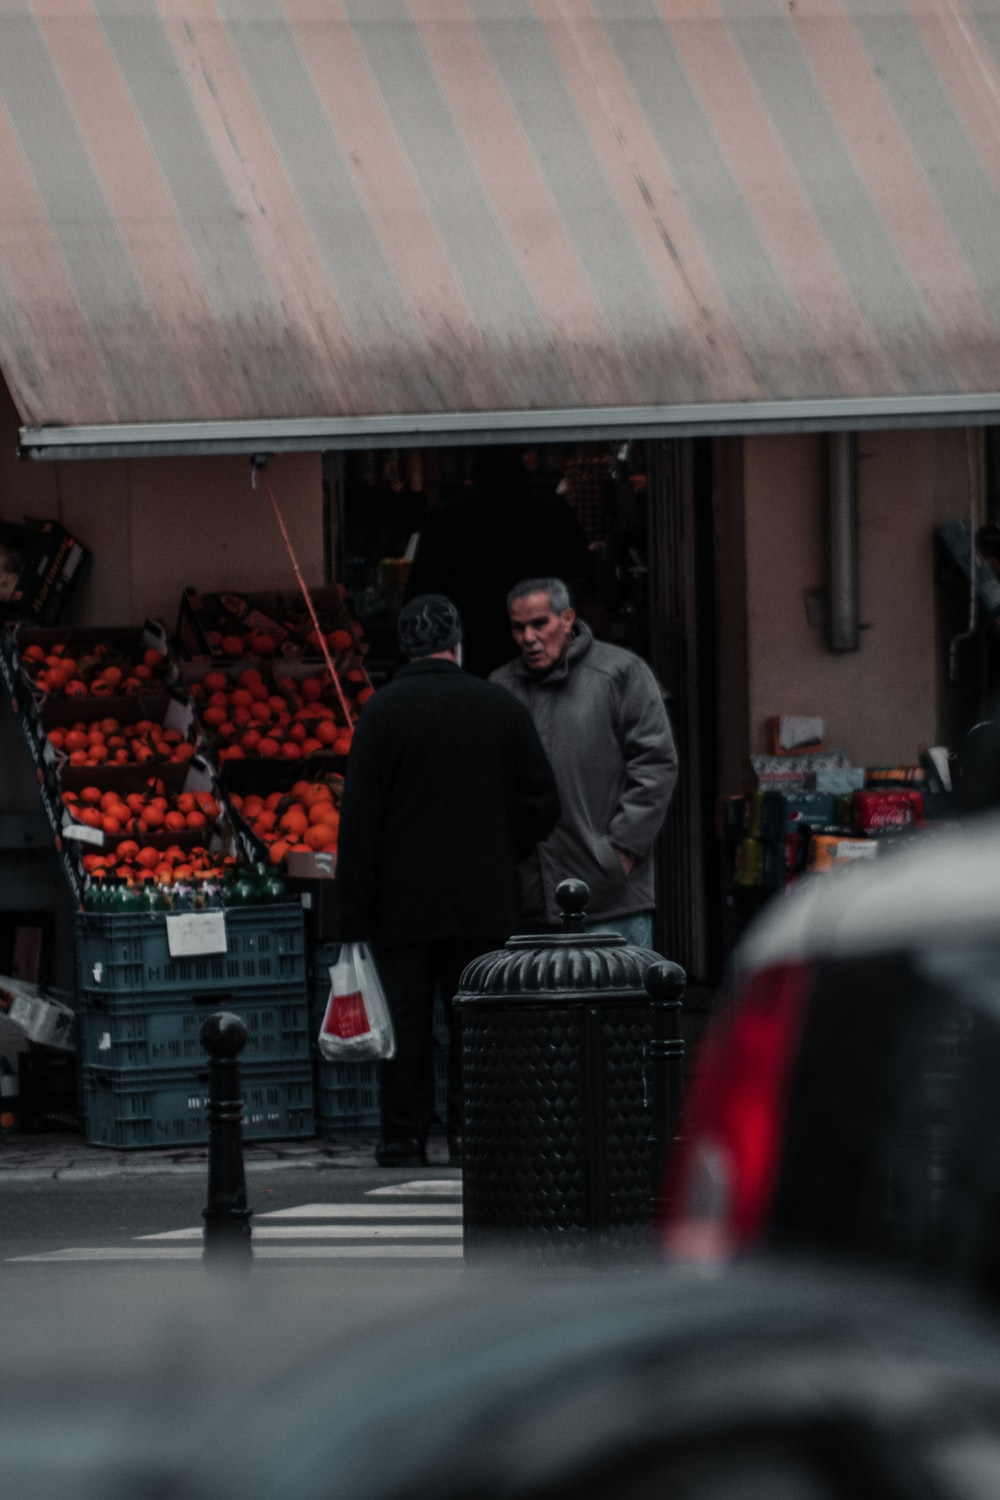 man in black jacket standing near fruit stand during daytime